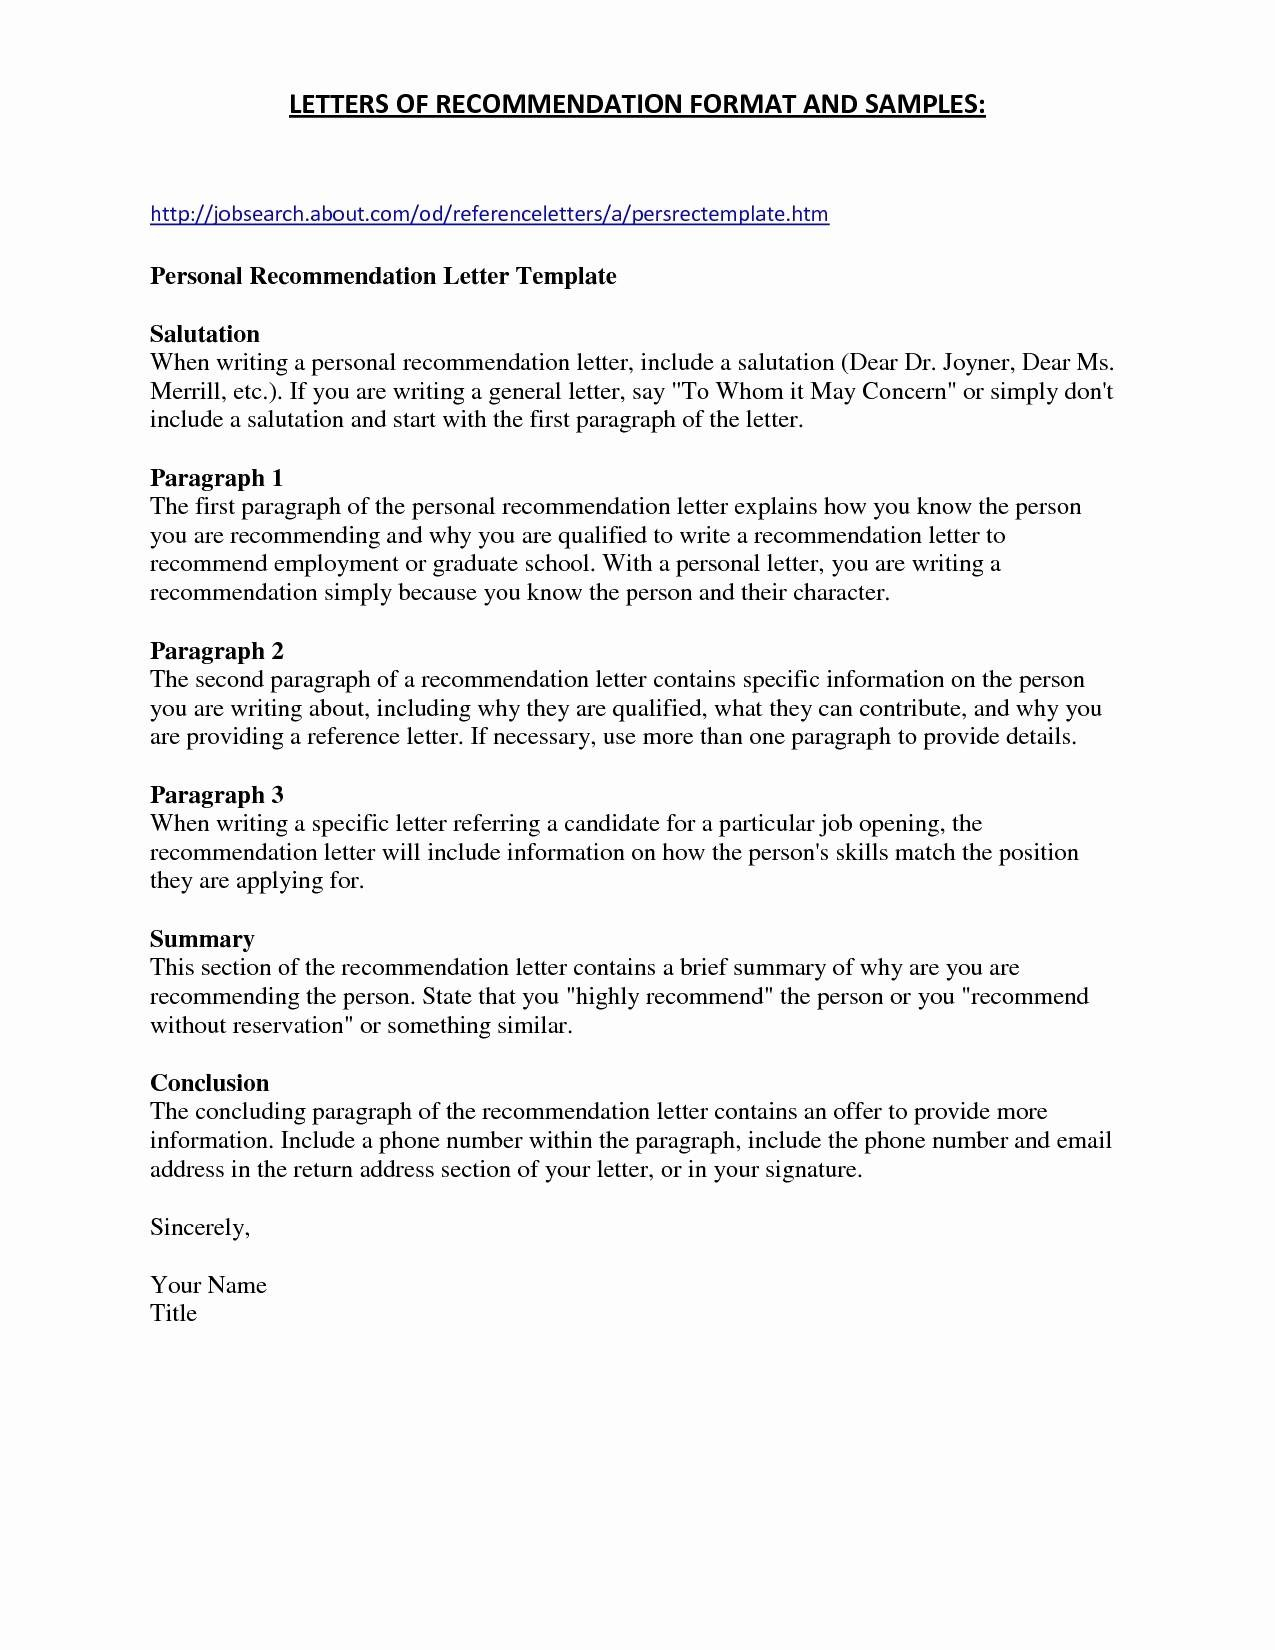 Lease Default Letter Template - How to Write A Cover Letter for A Rental Application